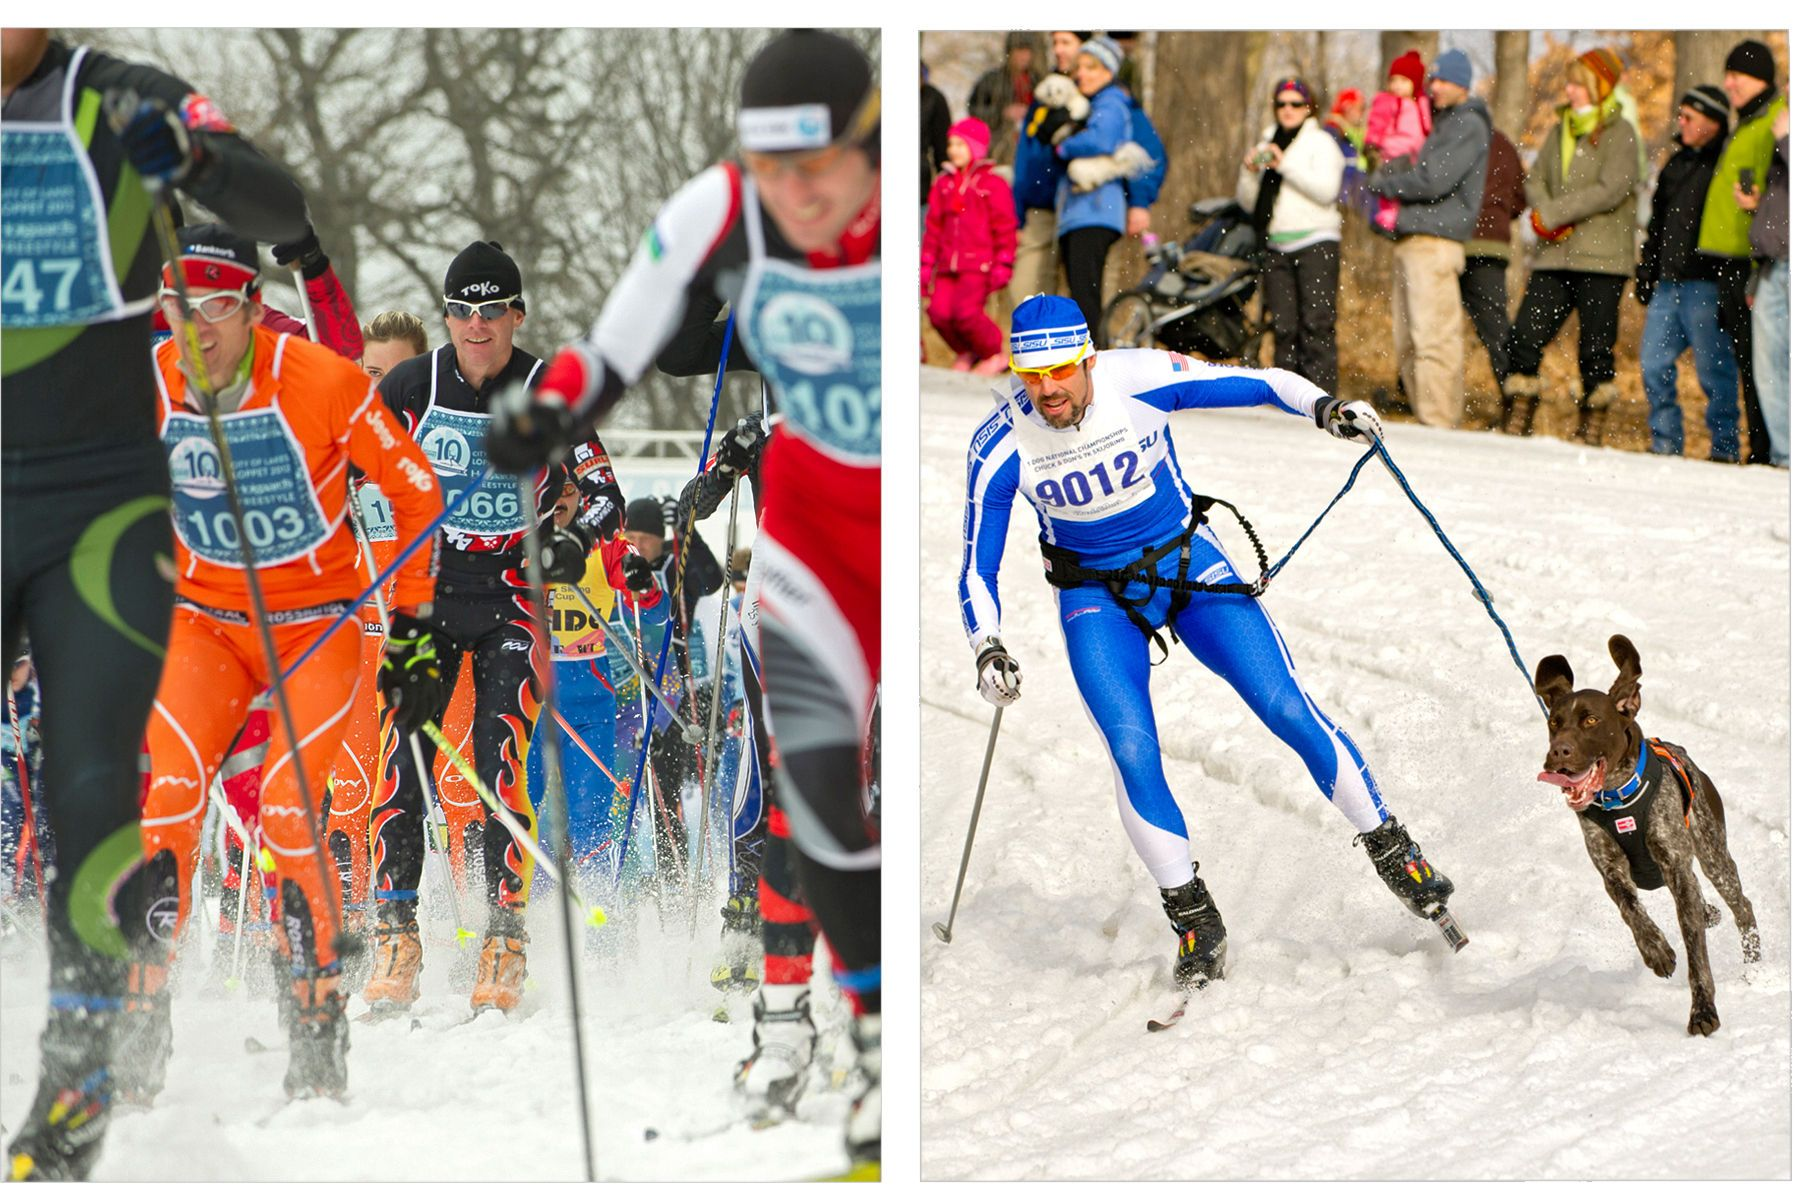 City of Lakes Loppet Ski Festival